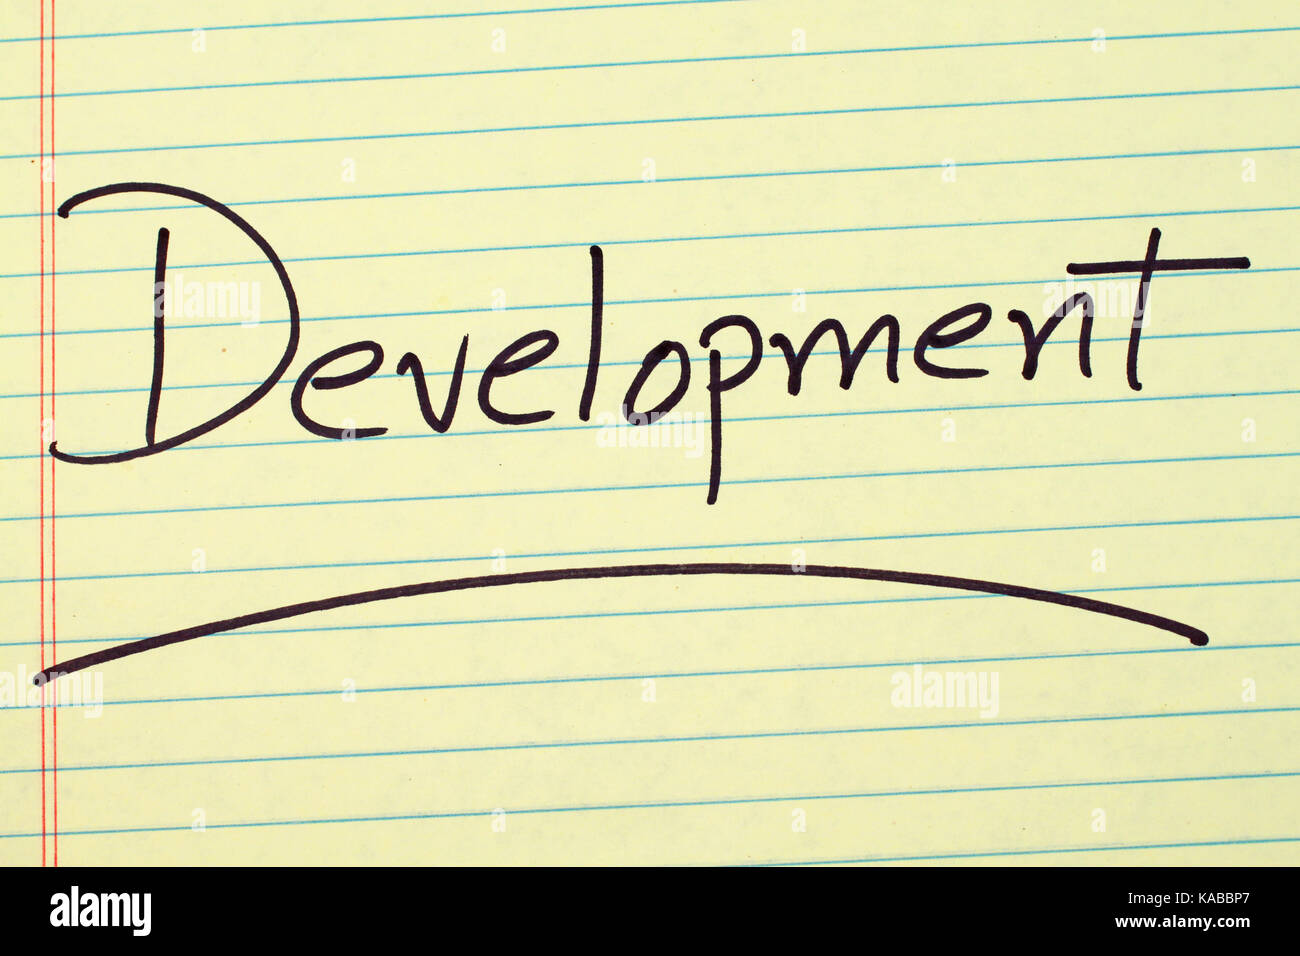 """The word """"Development"""" underlined on a yellow legal pad Stock Photo"""